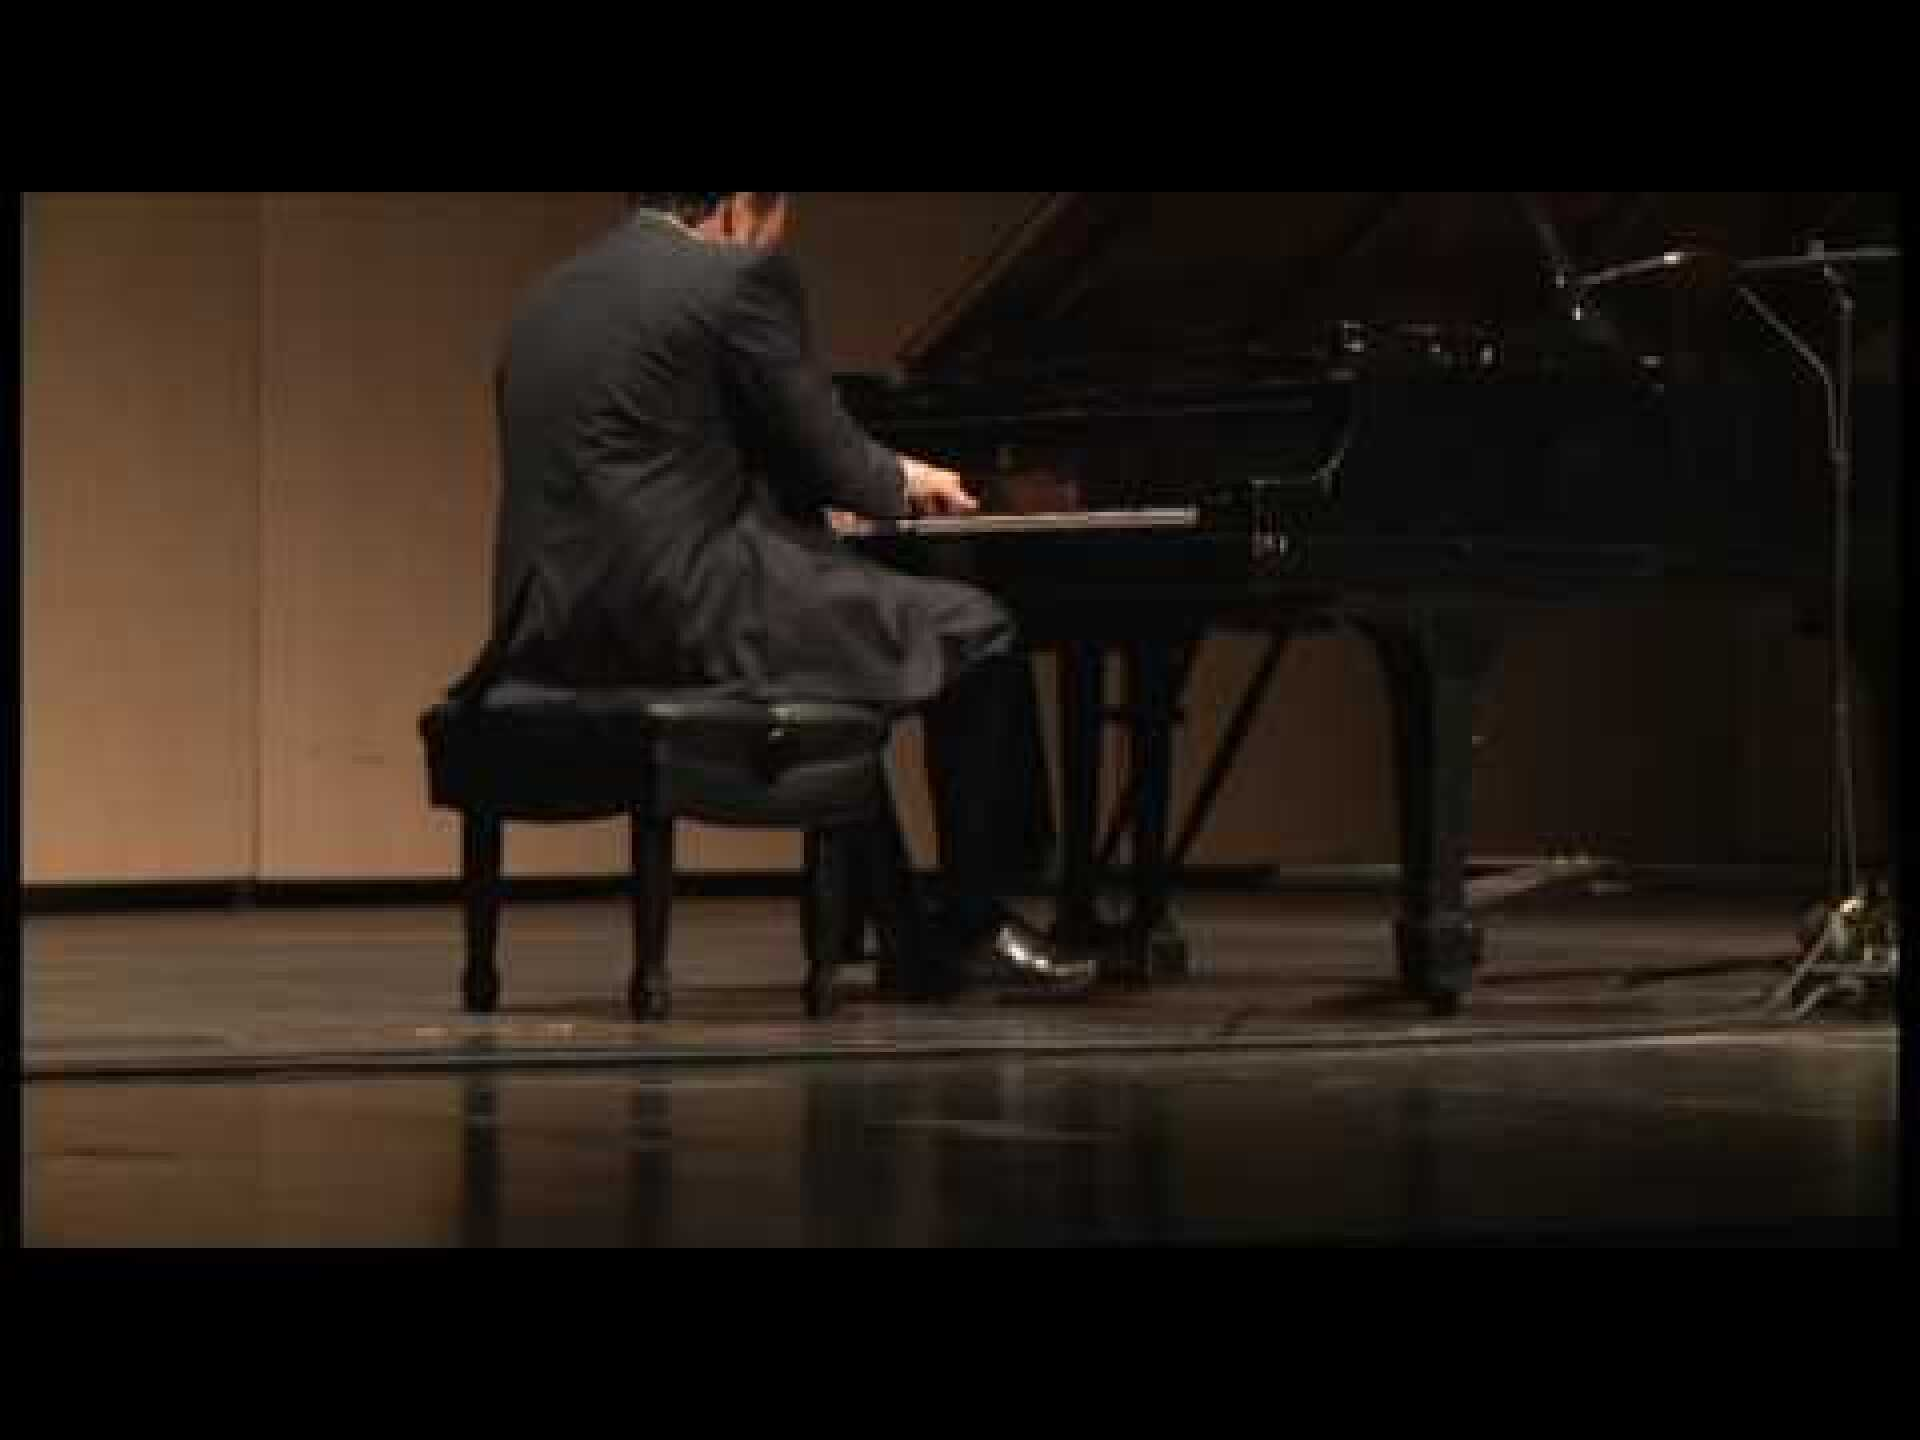 David M. Kinikini plays Prokofiev: Sonata no. 7 in B-flat Major, op. 83, III. Precipitato